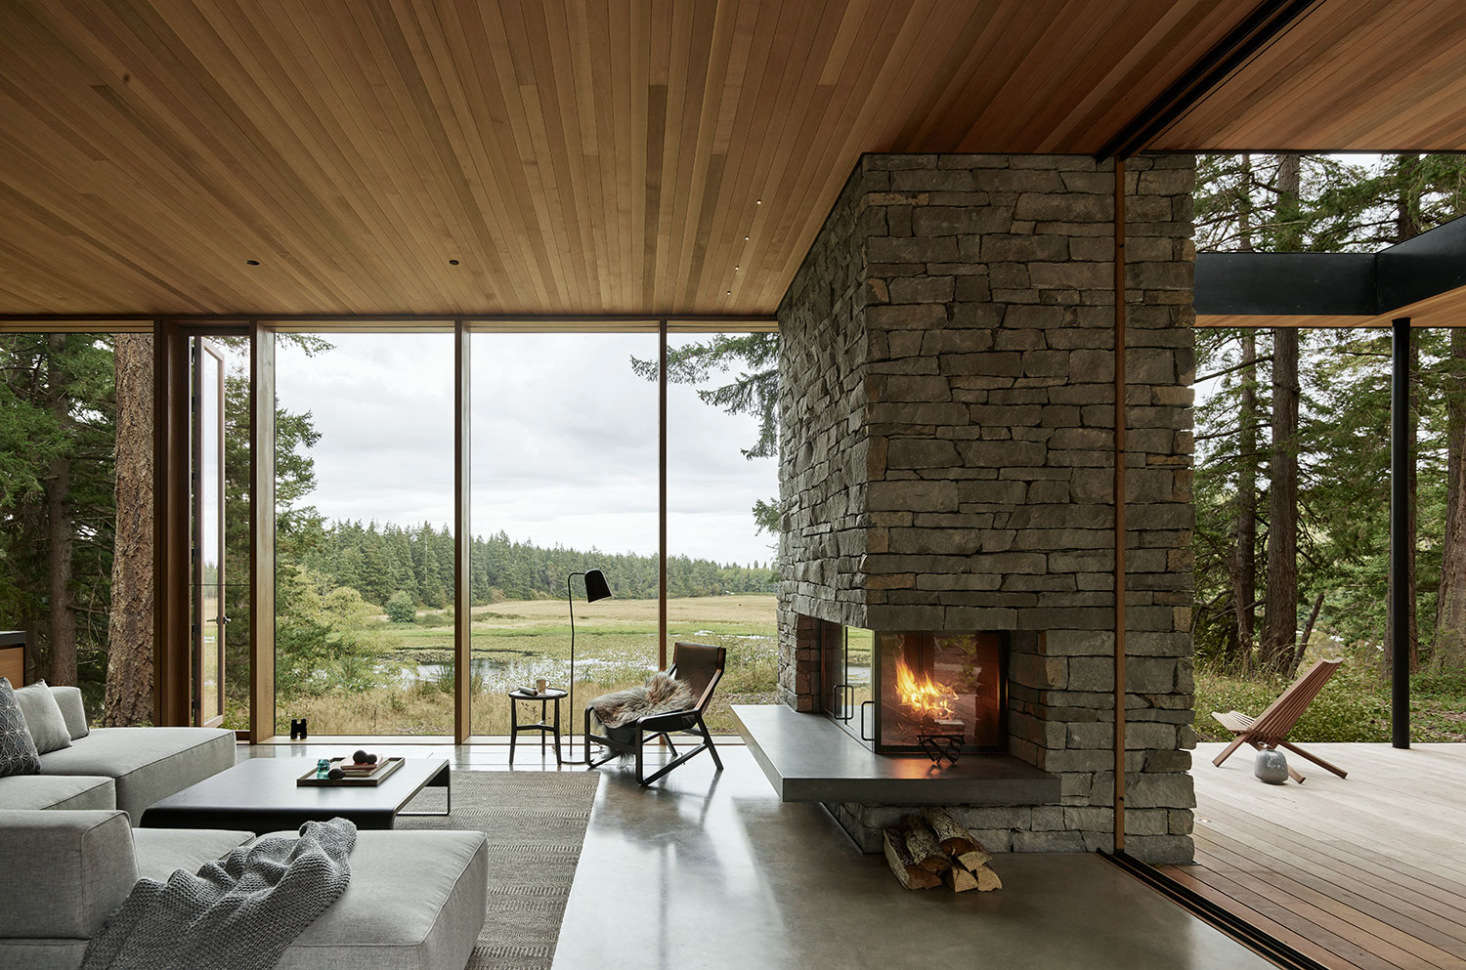 A portion of the stone fireplace rests on the deck just off the living room, blurring the line between indoors and out.